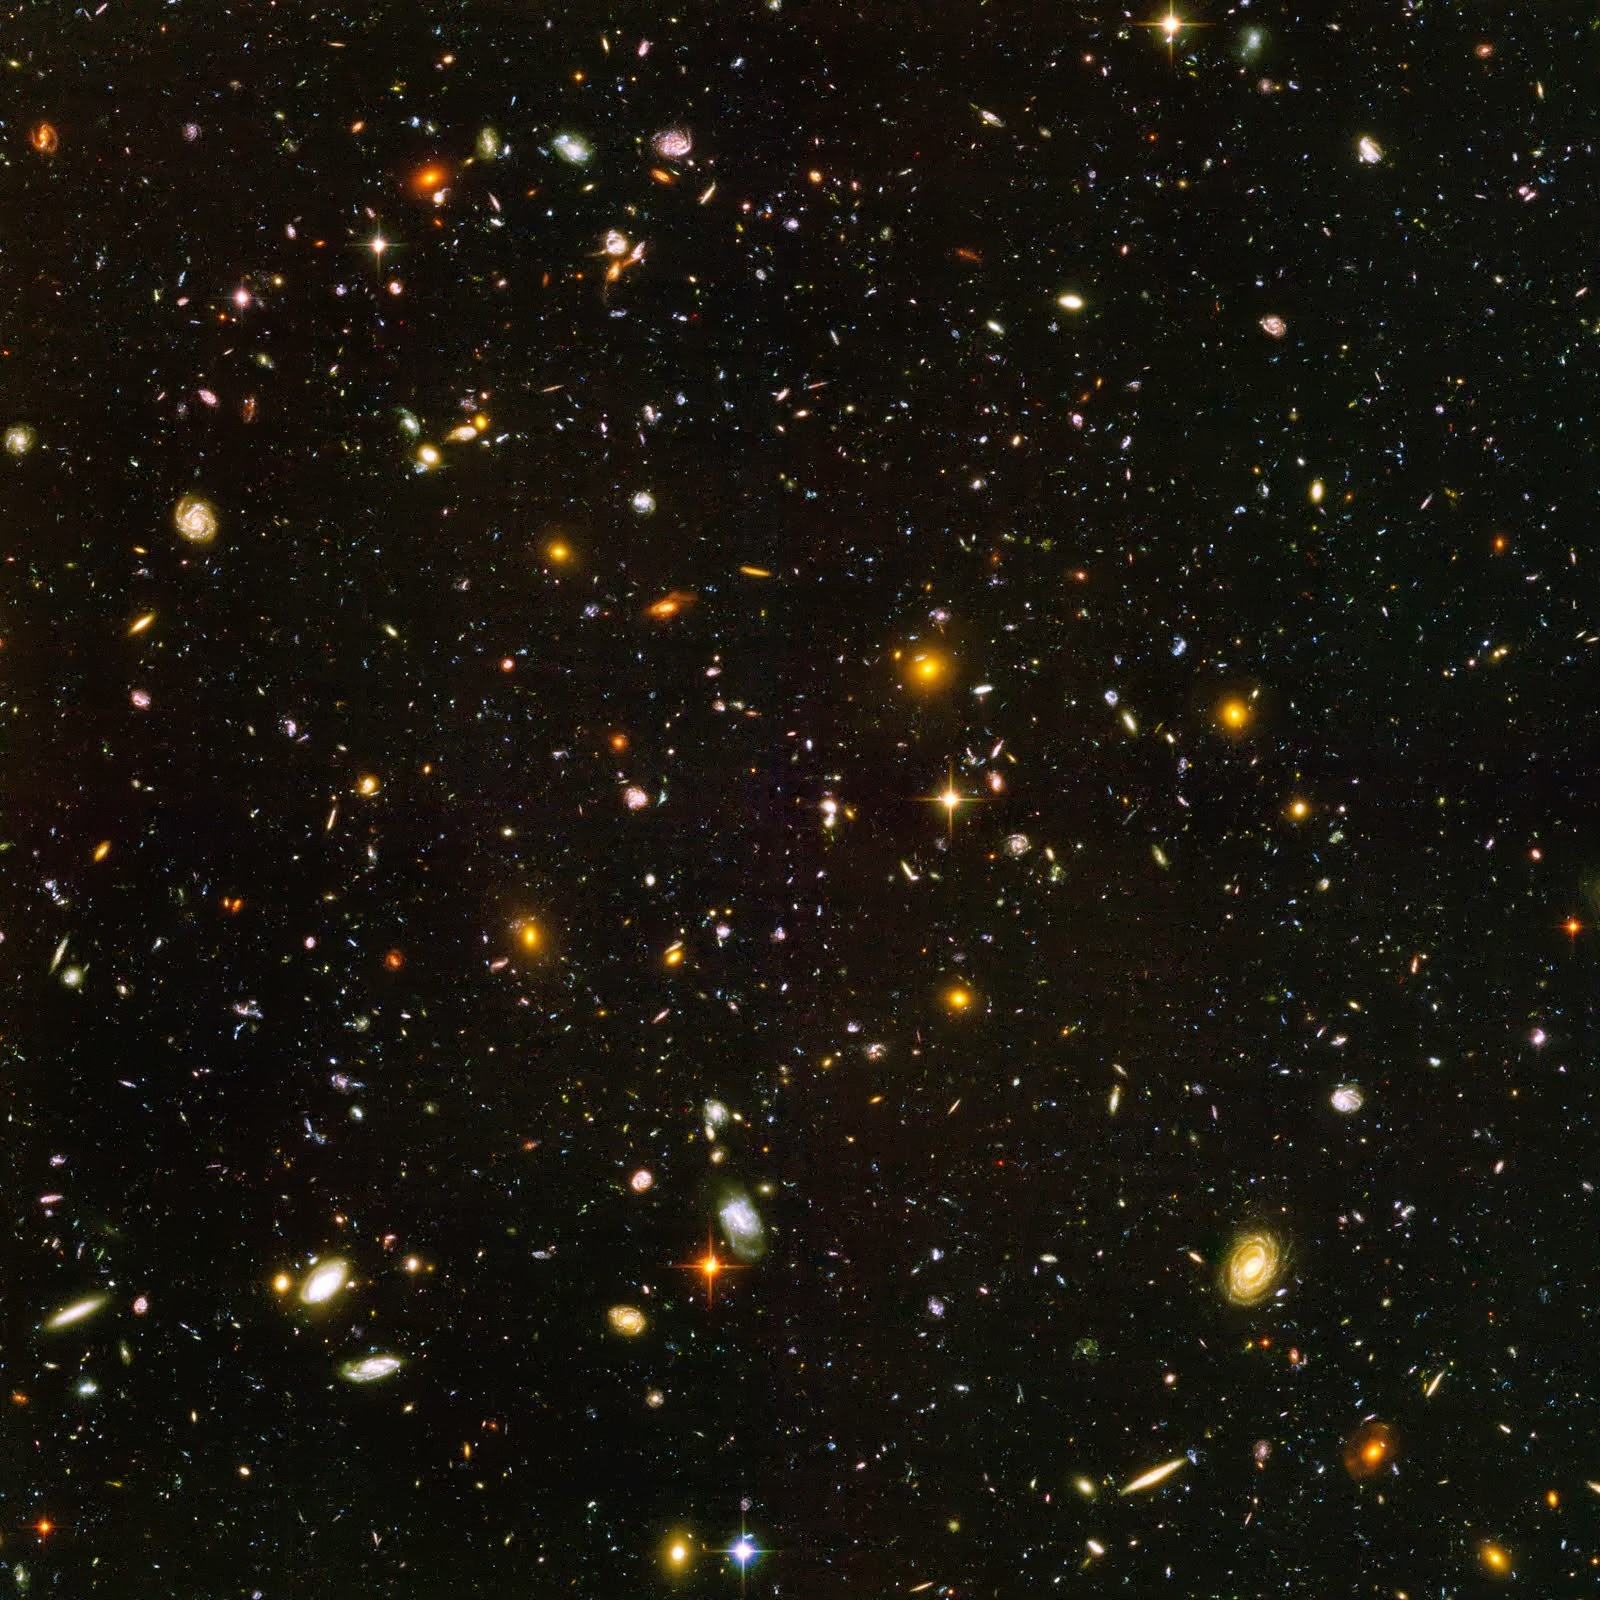 Download Hubble Deep Space Images in high resolution for High 1600x1600